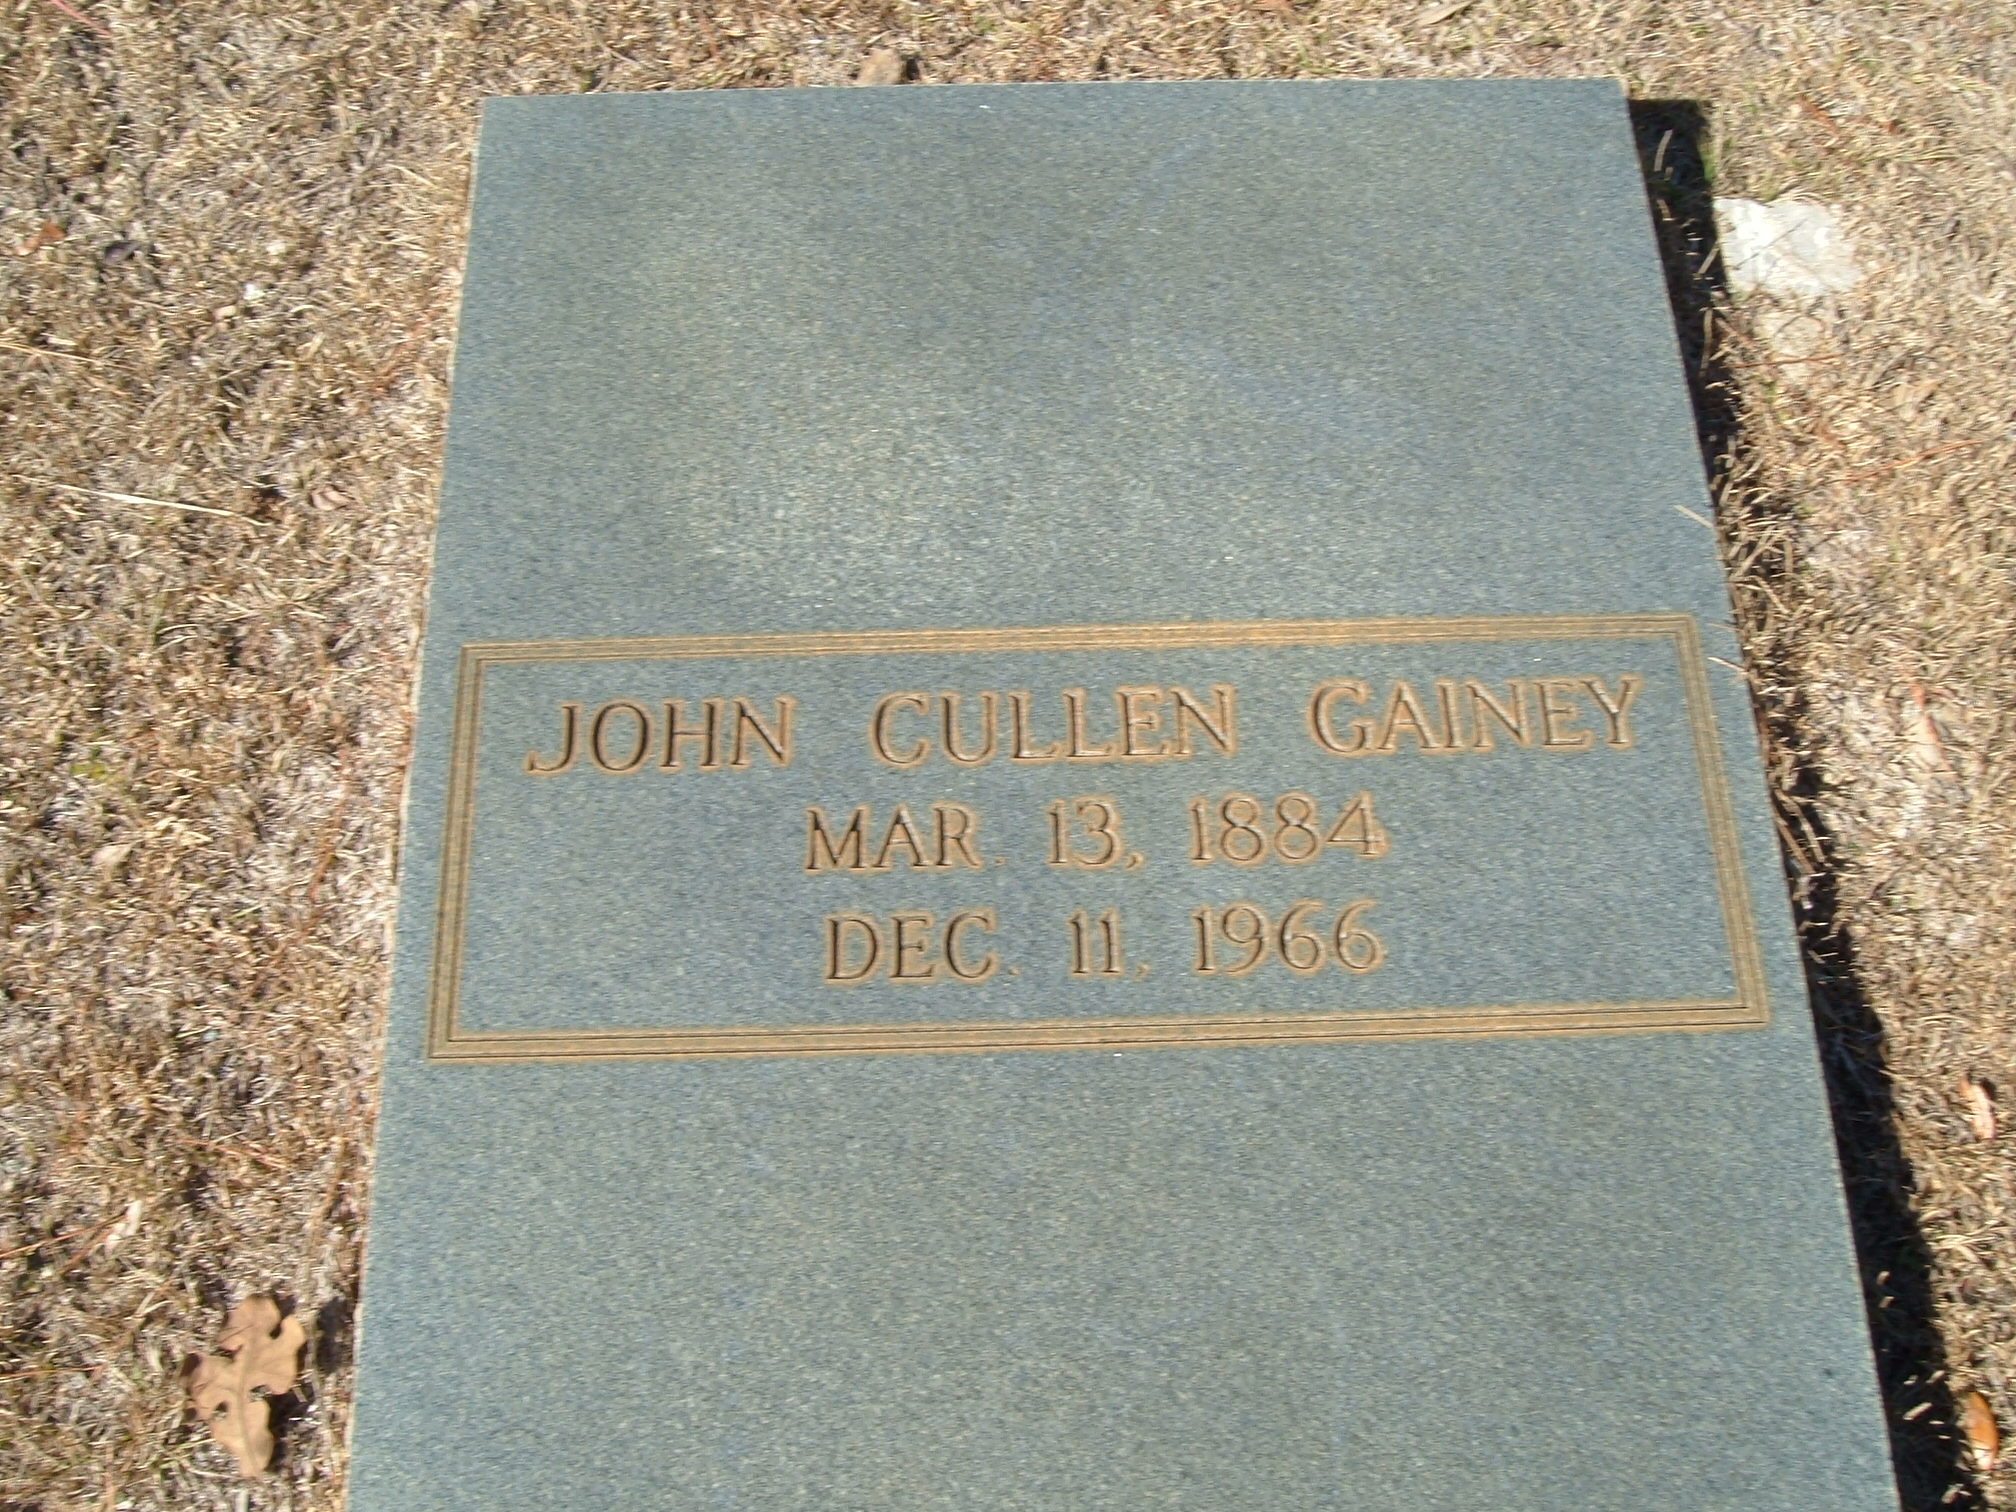 John Abraham Gainey